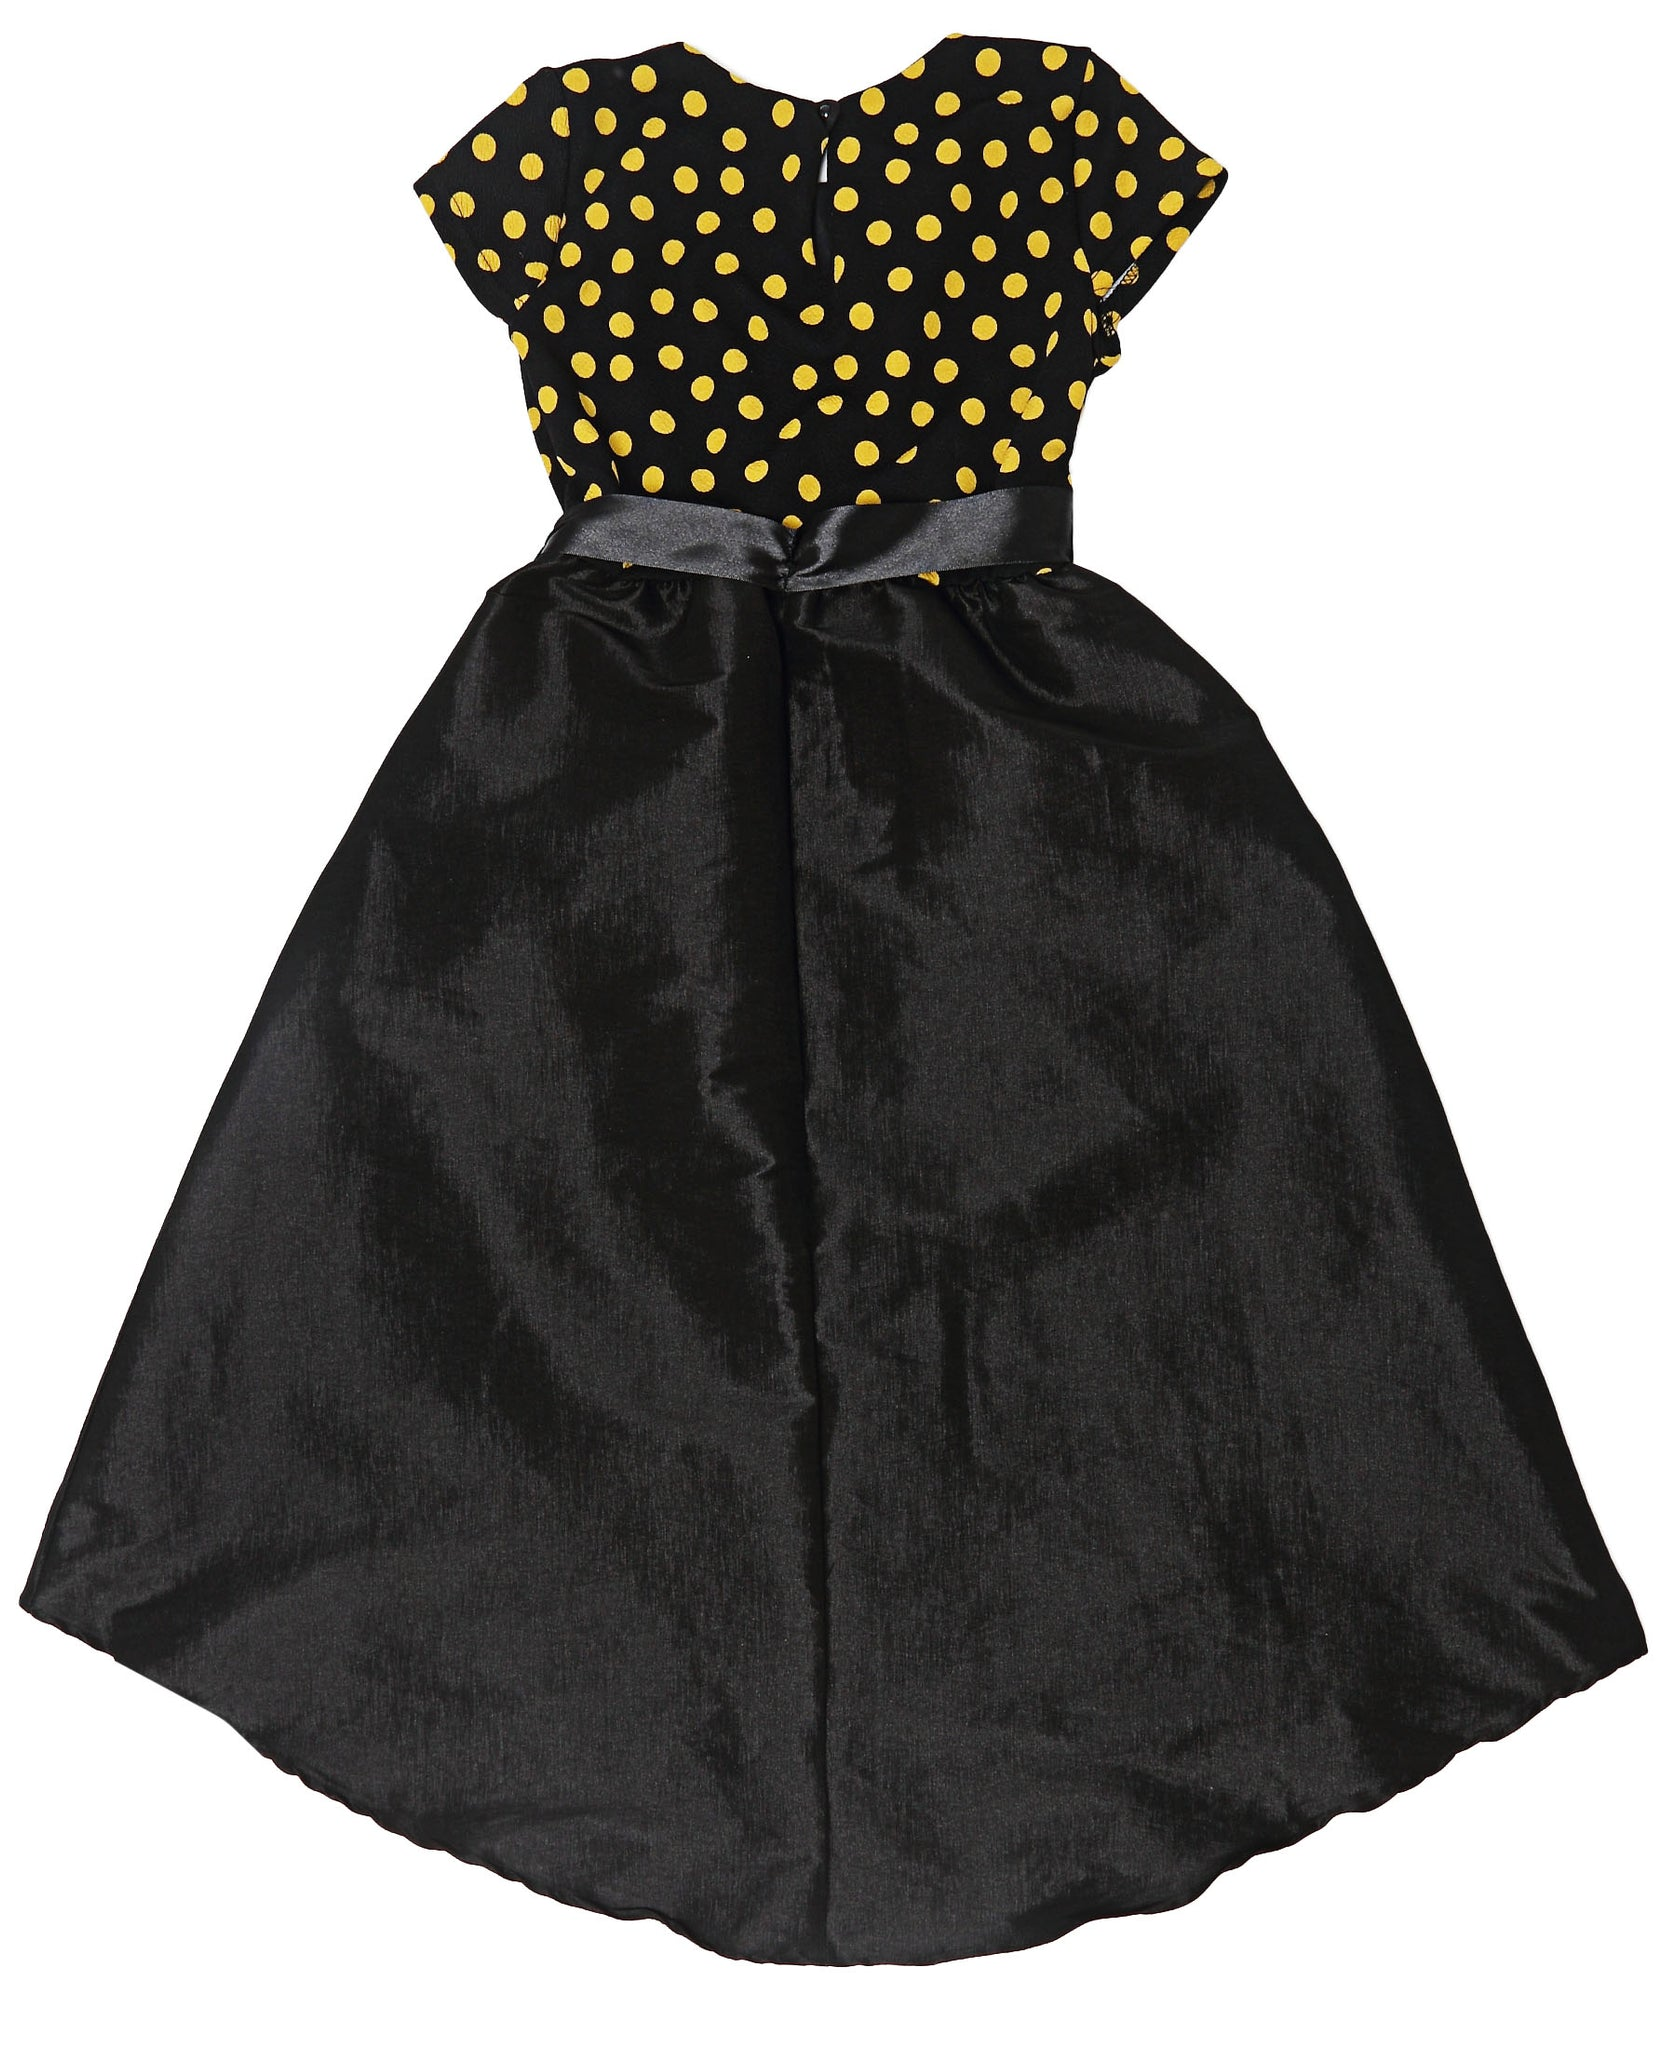 Girls Polkadot Dress - Black